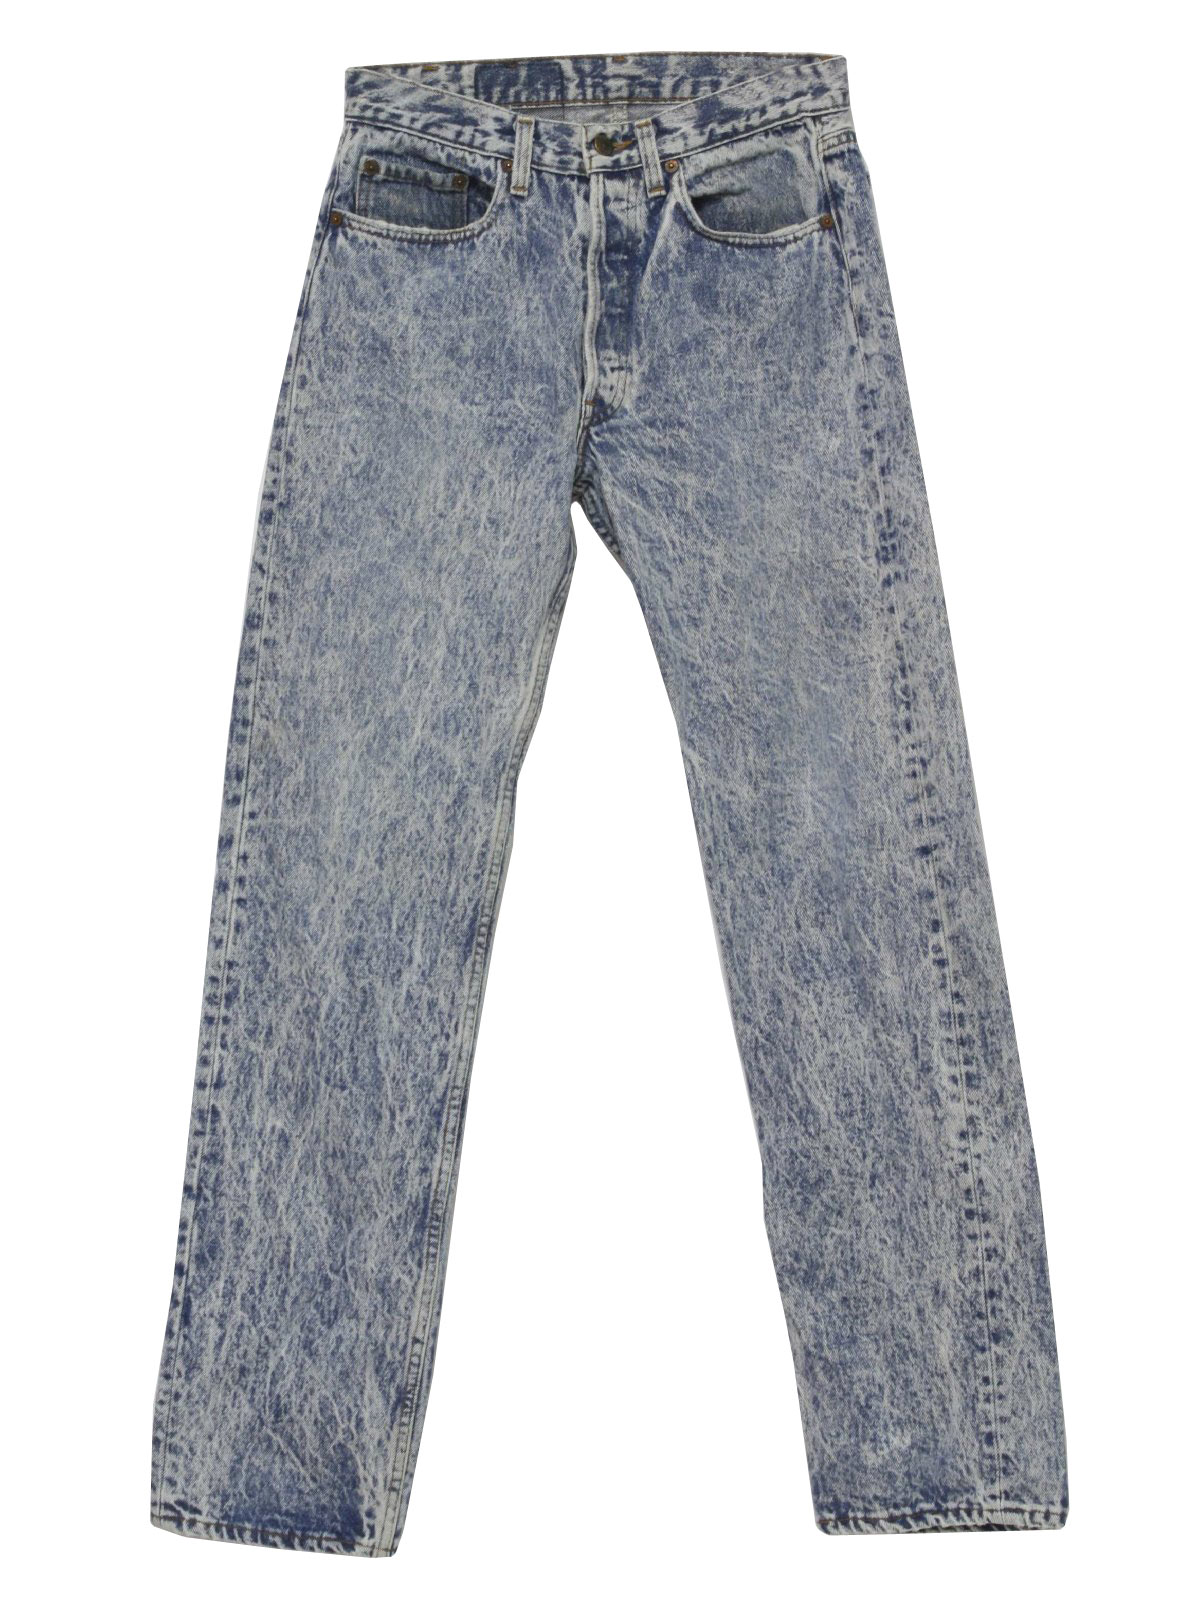 Jeans From The JNCO u0026#39;90s Fashion Trend For Girls